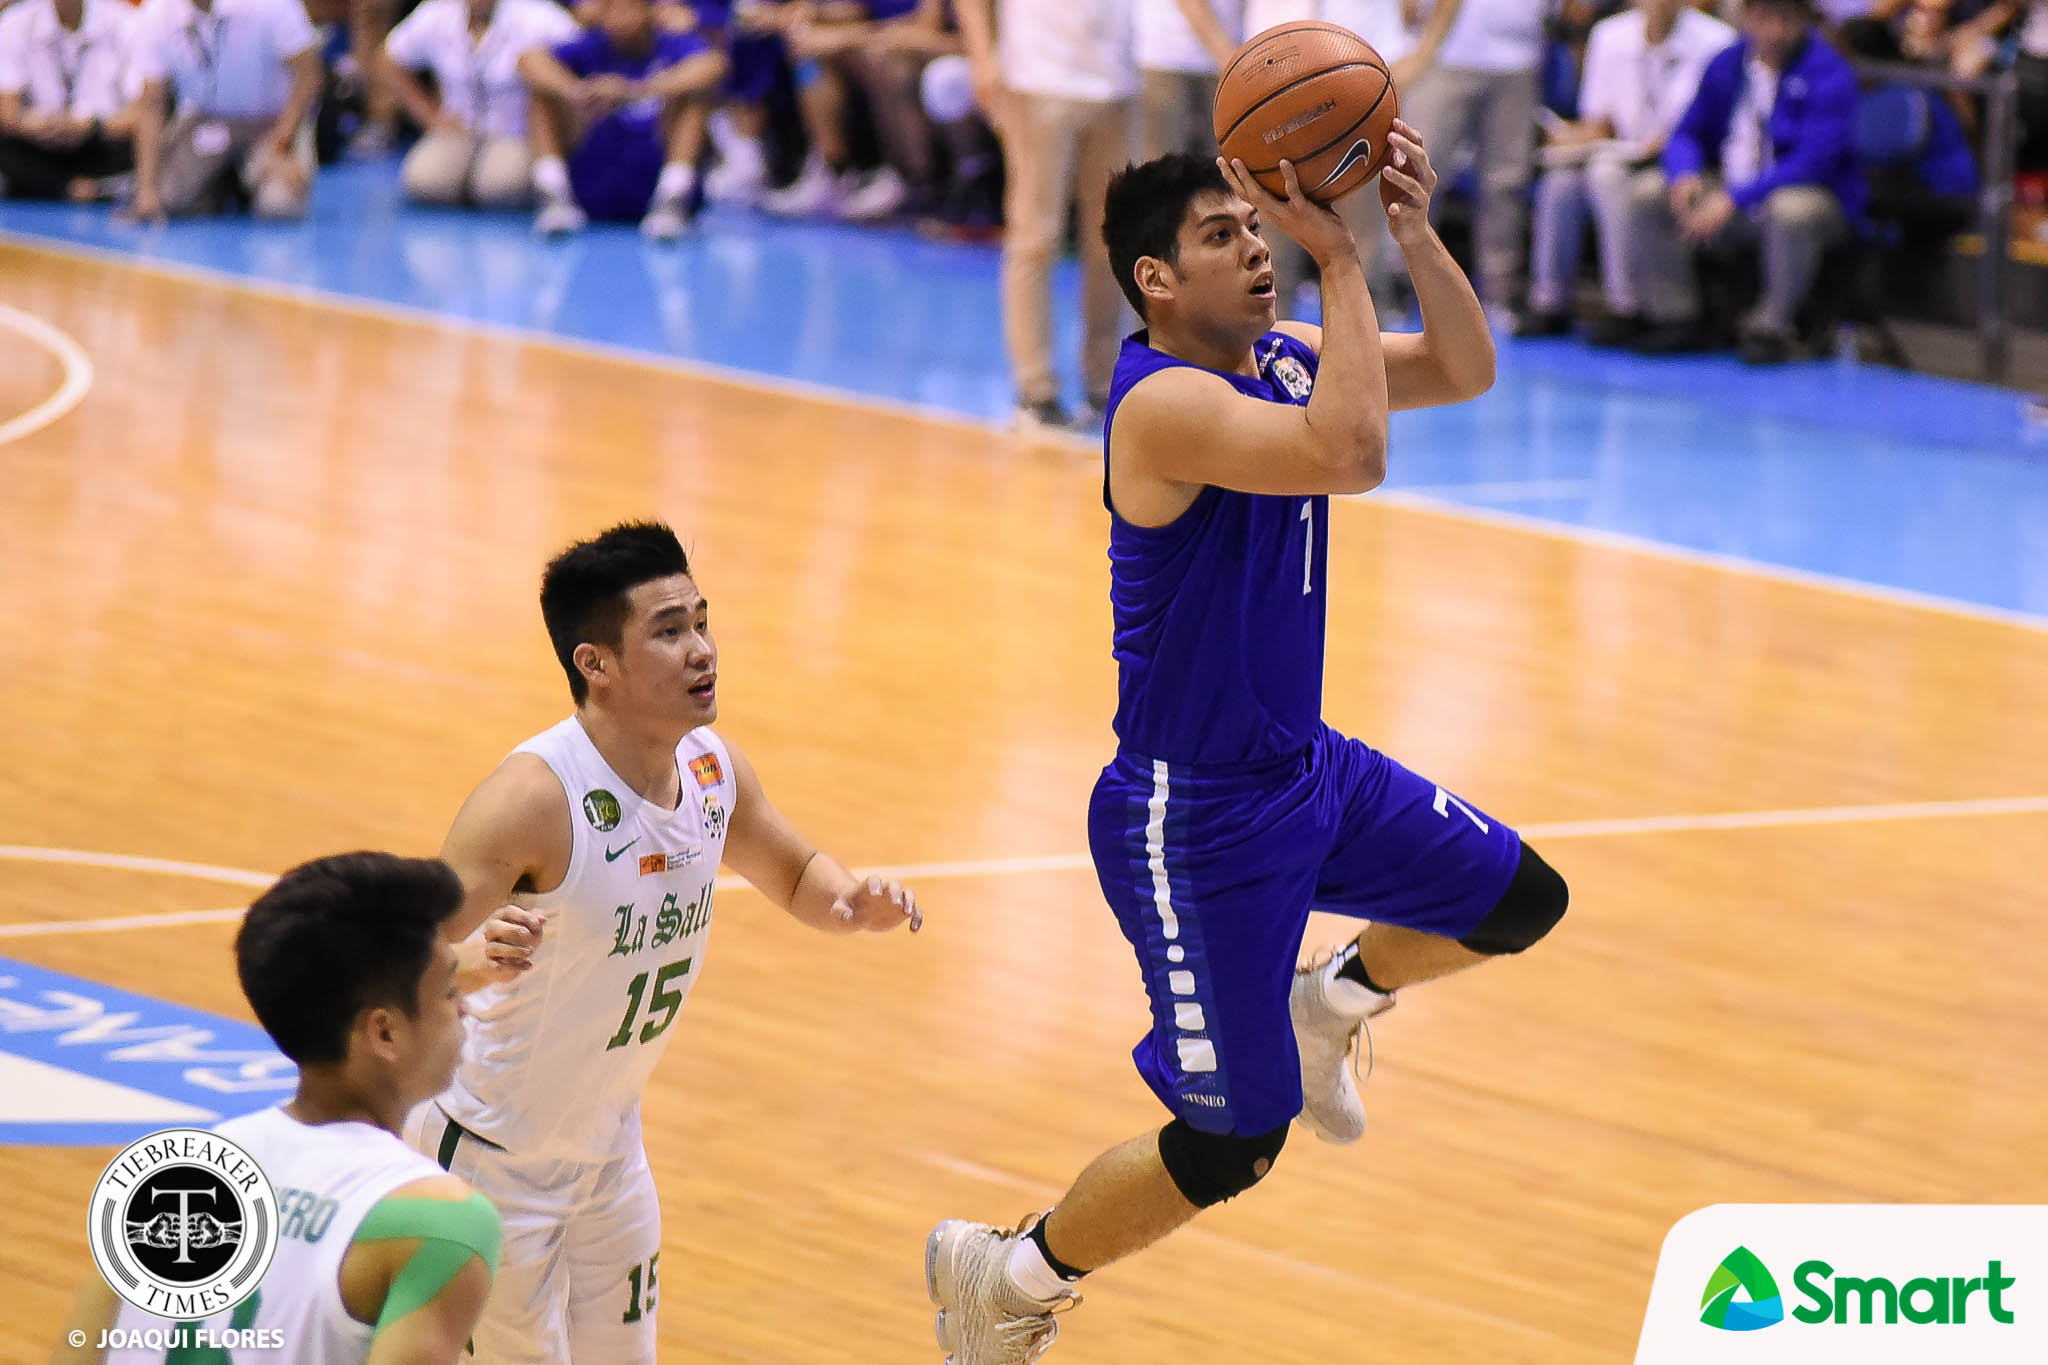 Tiebreaker Times Nieto family continues to fight for Ateneo ADMU Basketball News UAAP  UAAP Season 80 Men's Basketball UAAP Season 80 Mike Nieto Matt Nieto Ateneo Men's Basketball